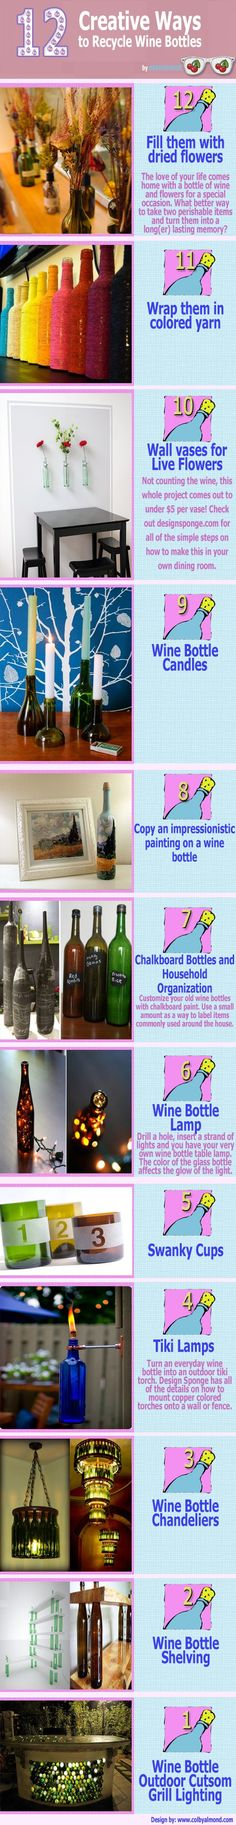 12 Ways to Recycle Wine Bottles [Infographic] – Greener Ideal Have any empty wine bottles? 12 Creative Ways to Recycle Wine Bottles Recycled Wine Bottles, Wine Bottle Crafts, Bottle Art, Recycle Bottles, Bottle Lamps, Diy Bottle, Decorate Bottles, Bottle Candles, Bottle Lights